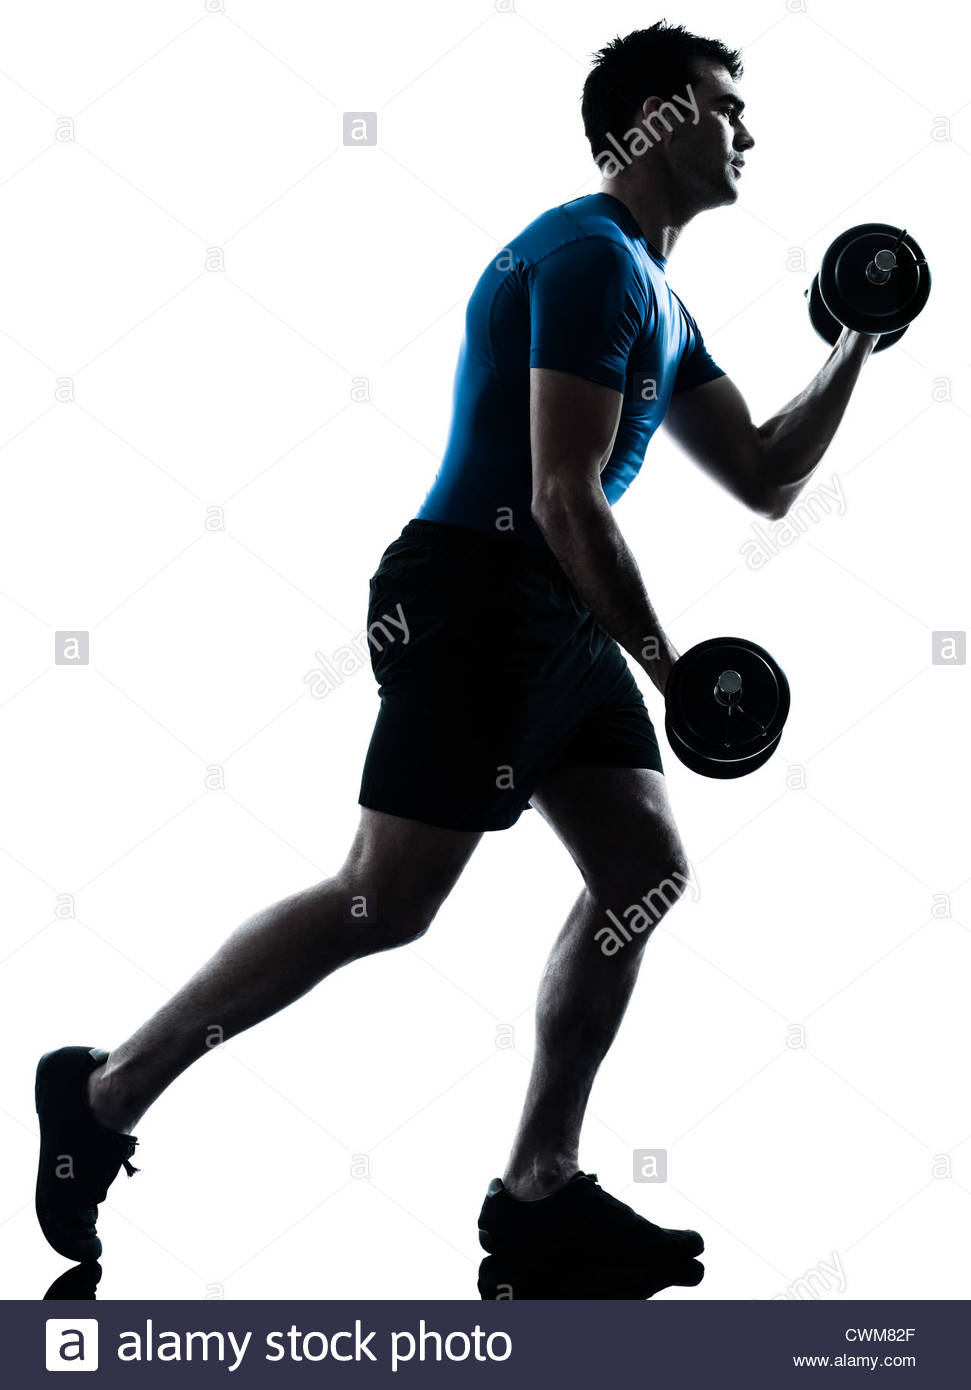 971x1390 One Caucasian Man Exercising Weight Training Workout Fitness